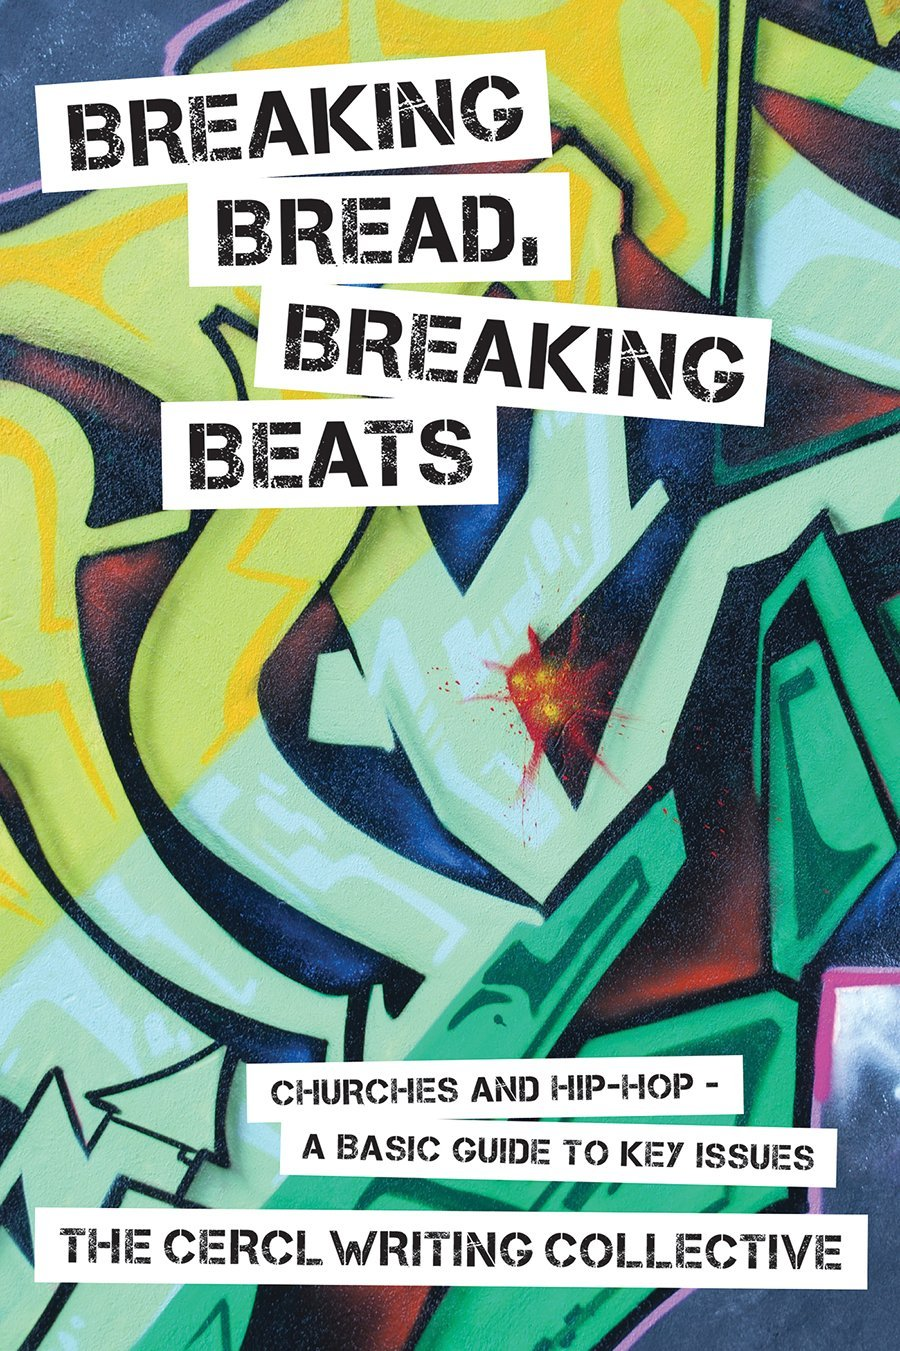 Breaking Bread, Breaking Beats: Churches and Hip-Hop A Basic Guide to Key Issues